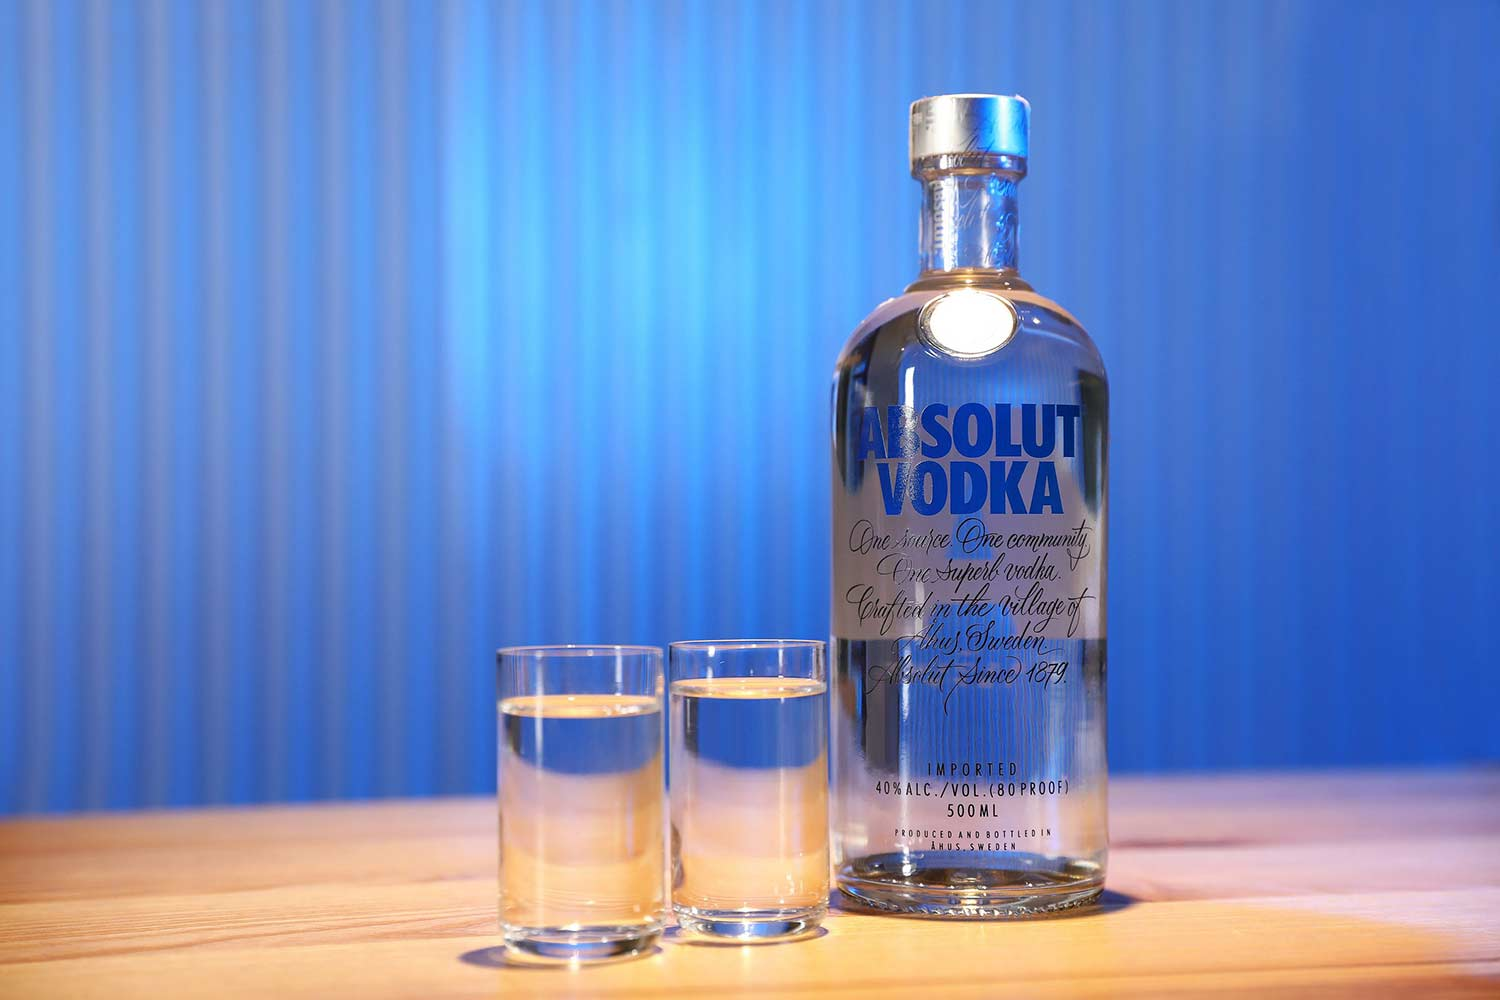 Drinking Vodka the Russian way